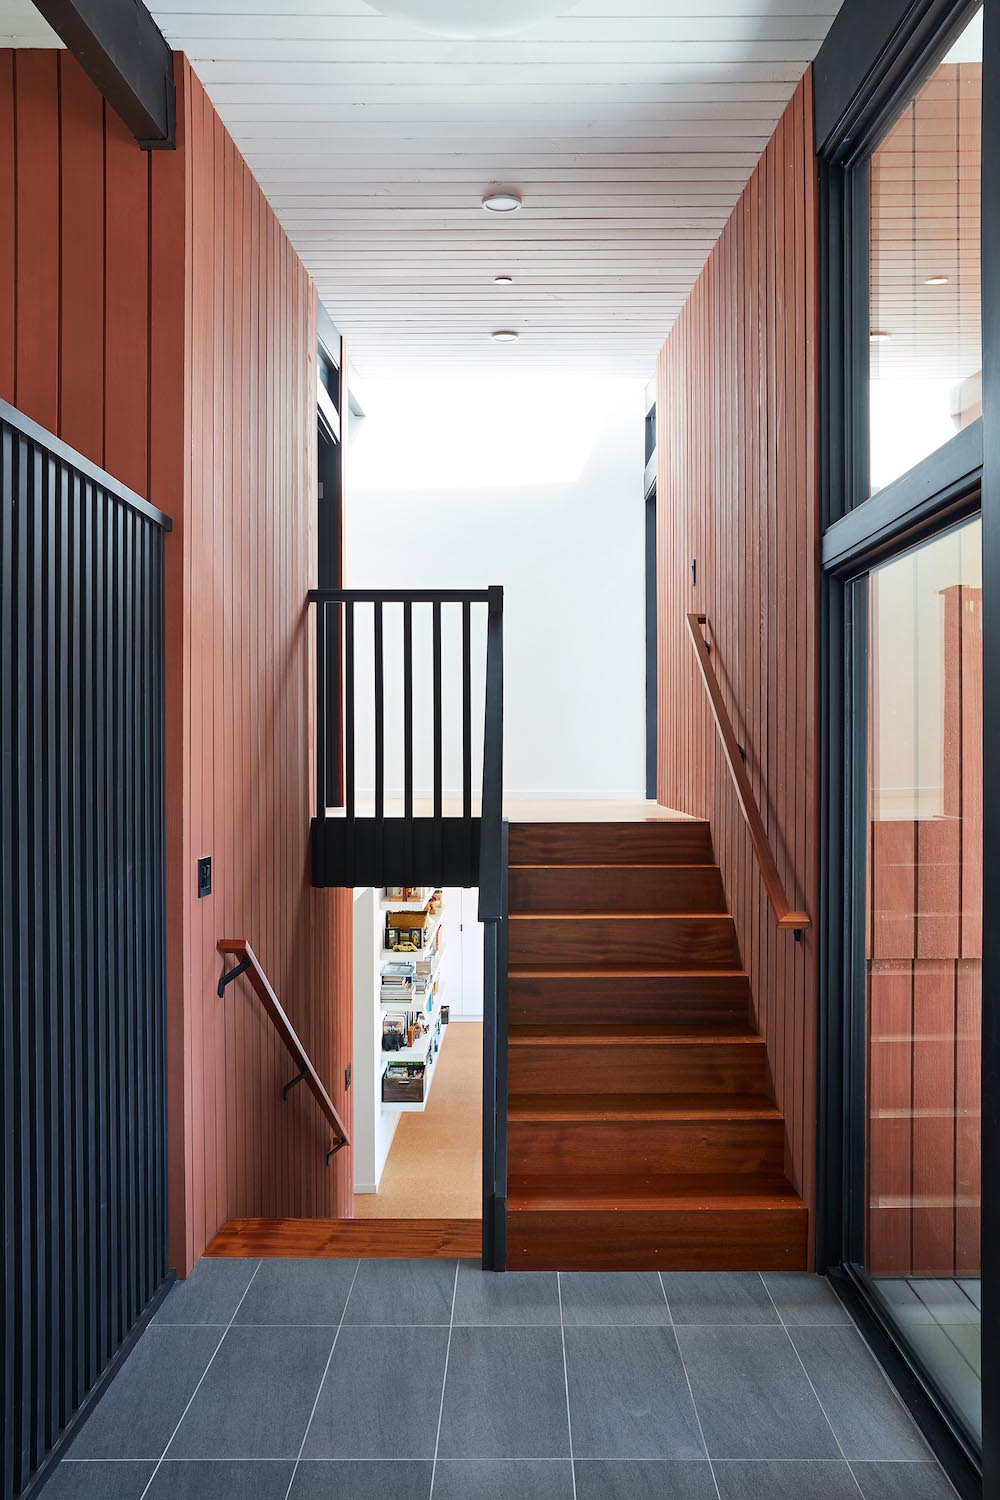 Wood stairs connect the various levels of this remodeled home.